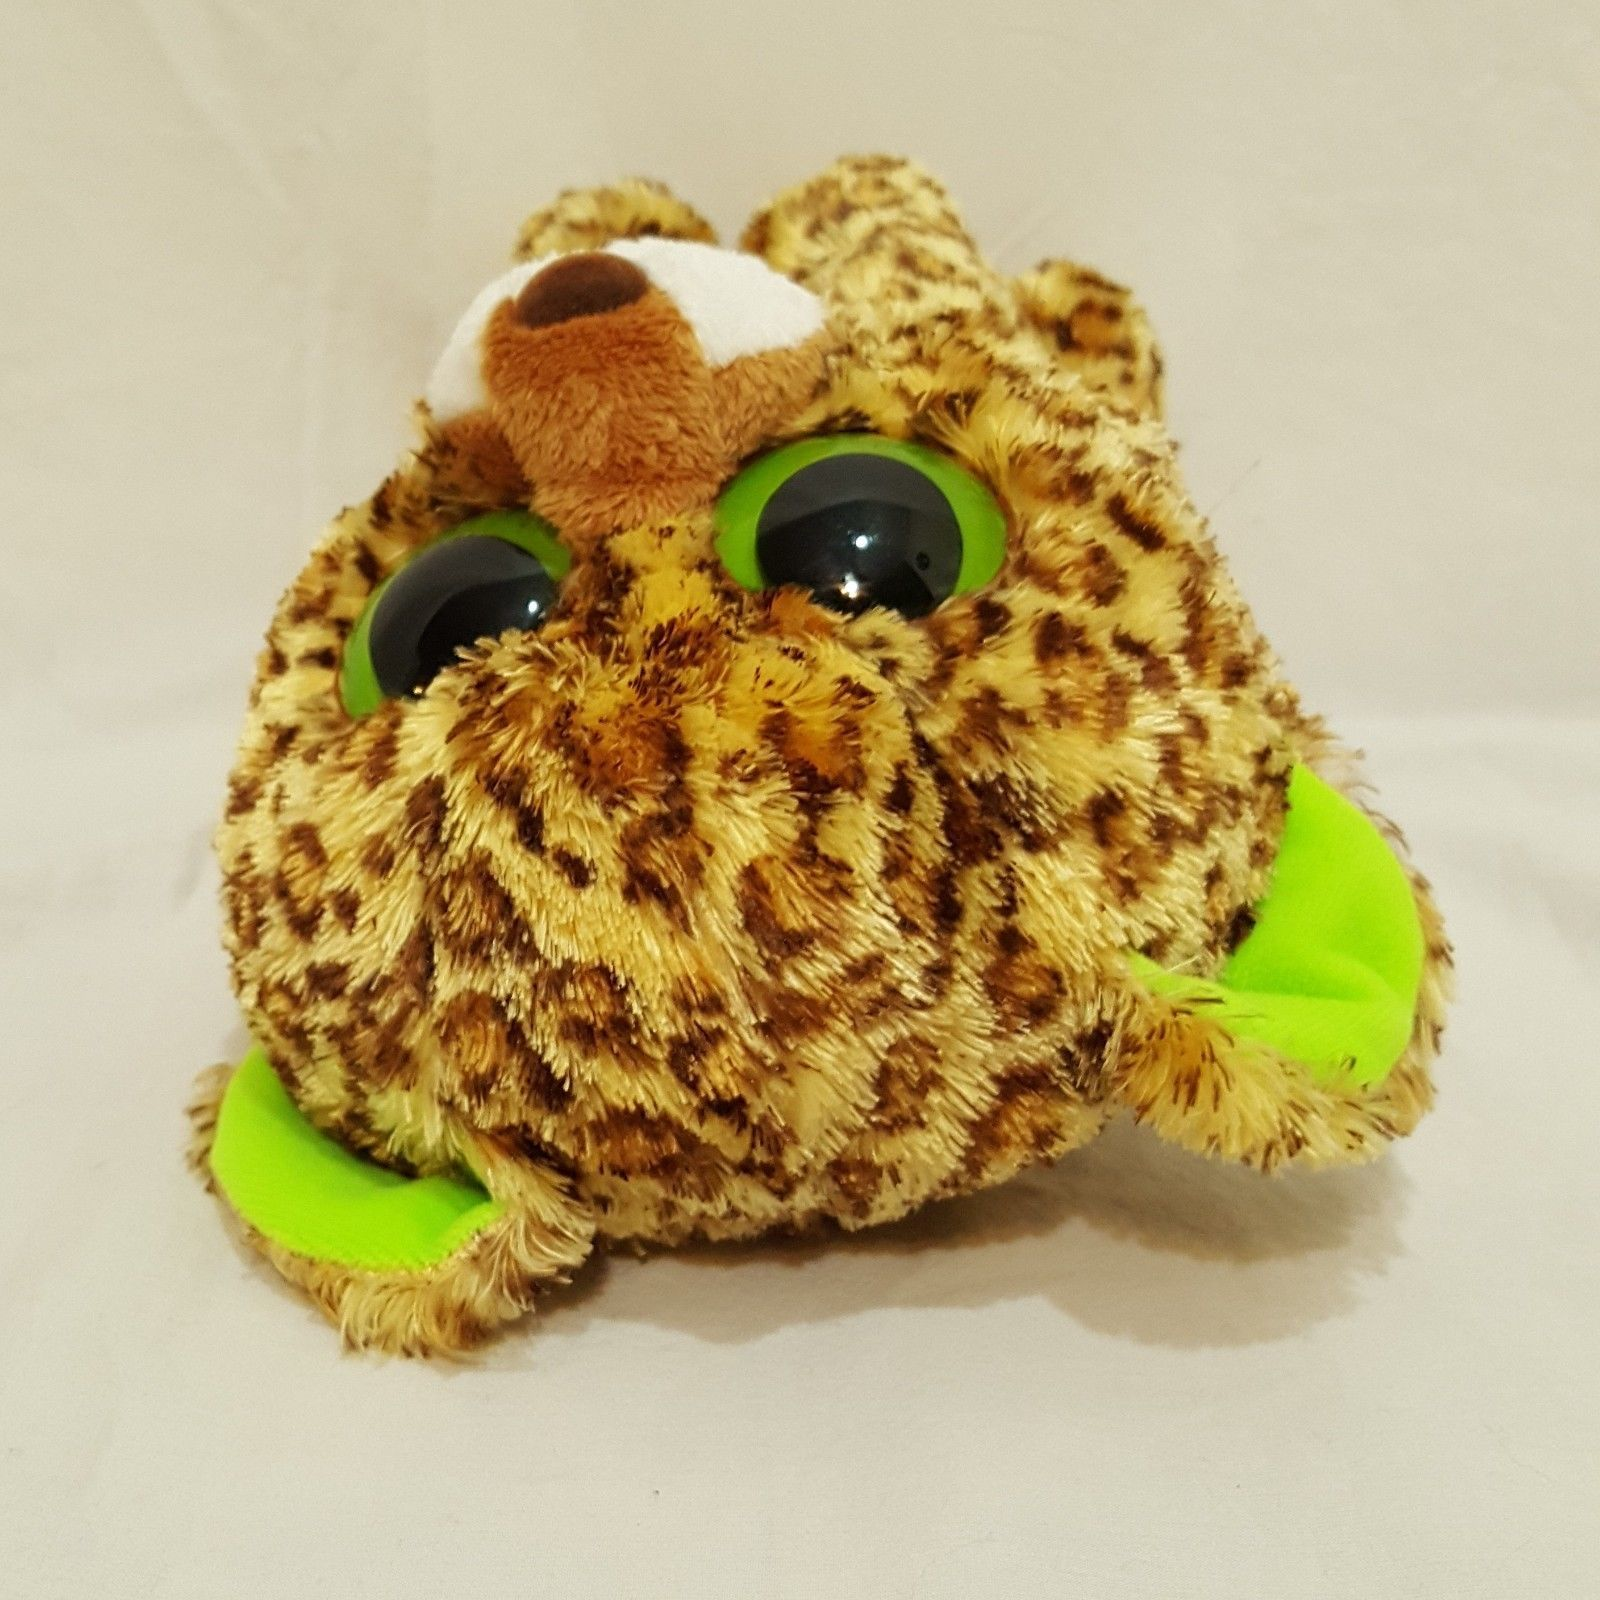 "Speckles Leopard Plush Stuffed Animal 9"" Ty Beanie Boos 2012 Large Eyes"